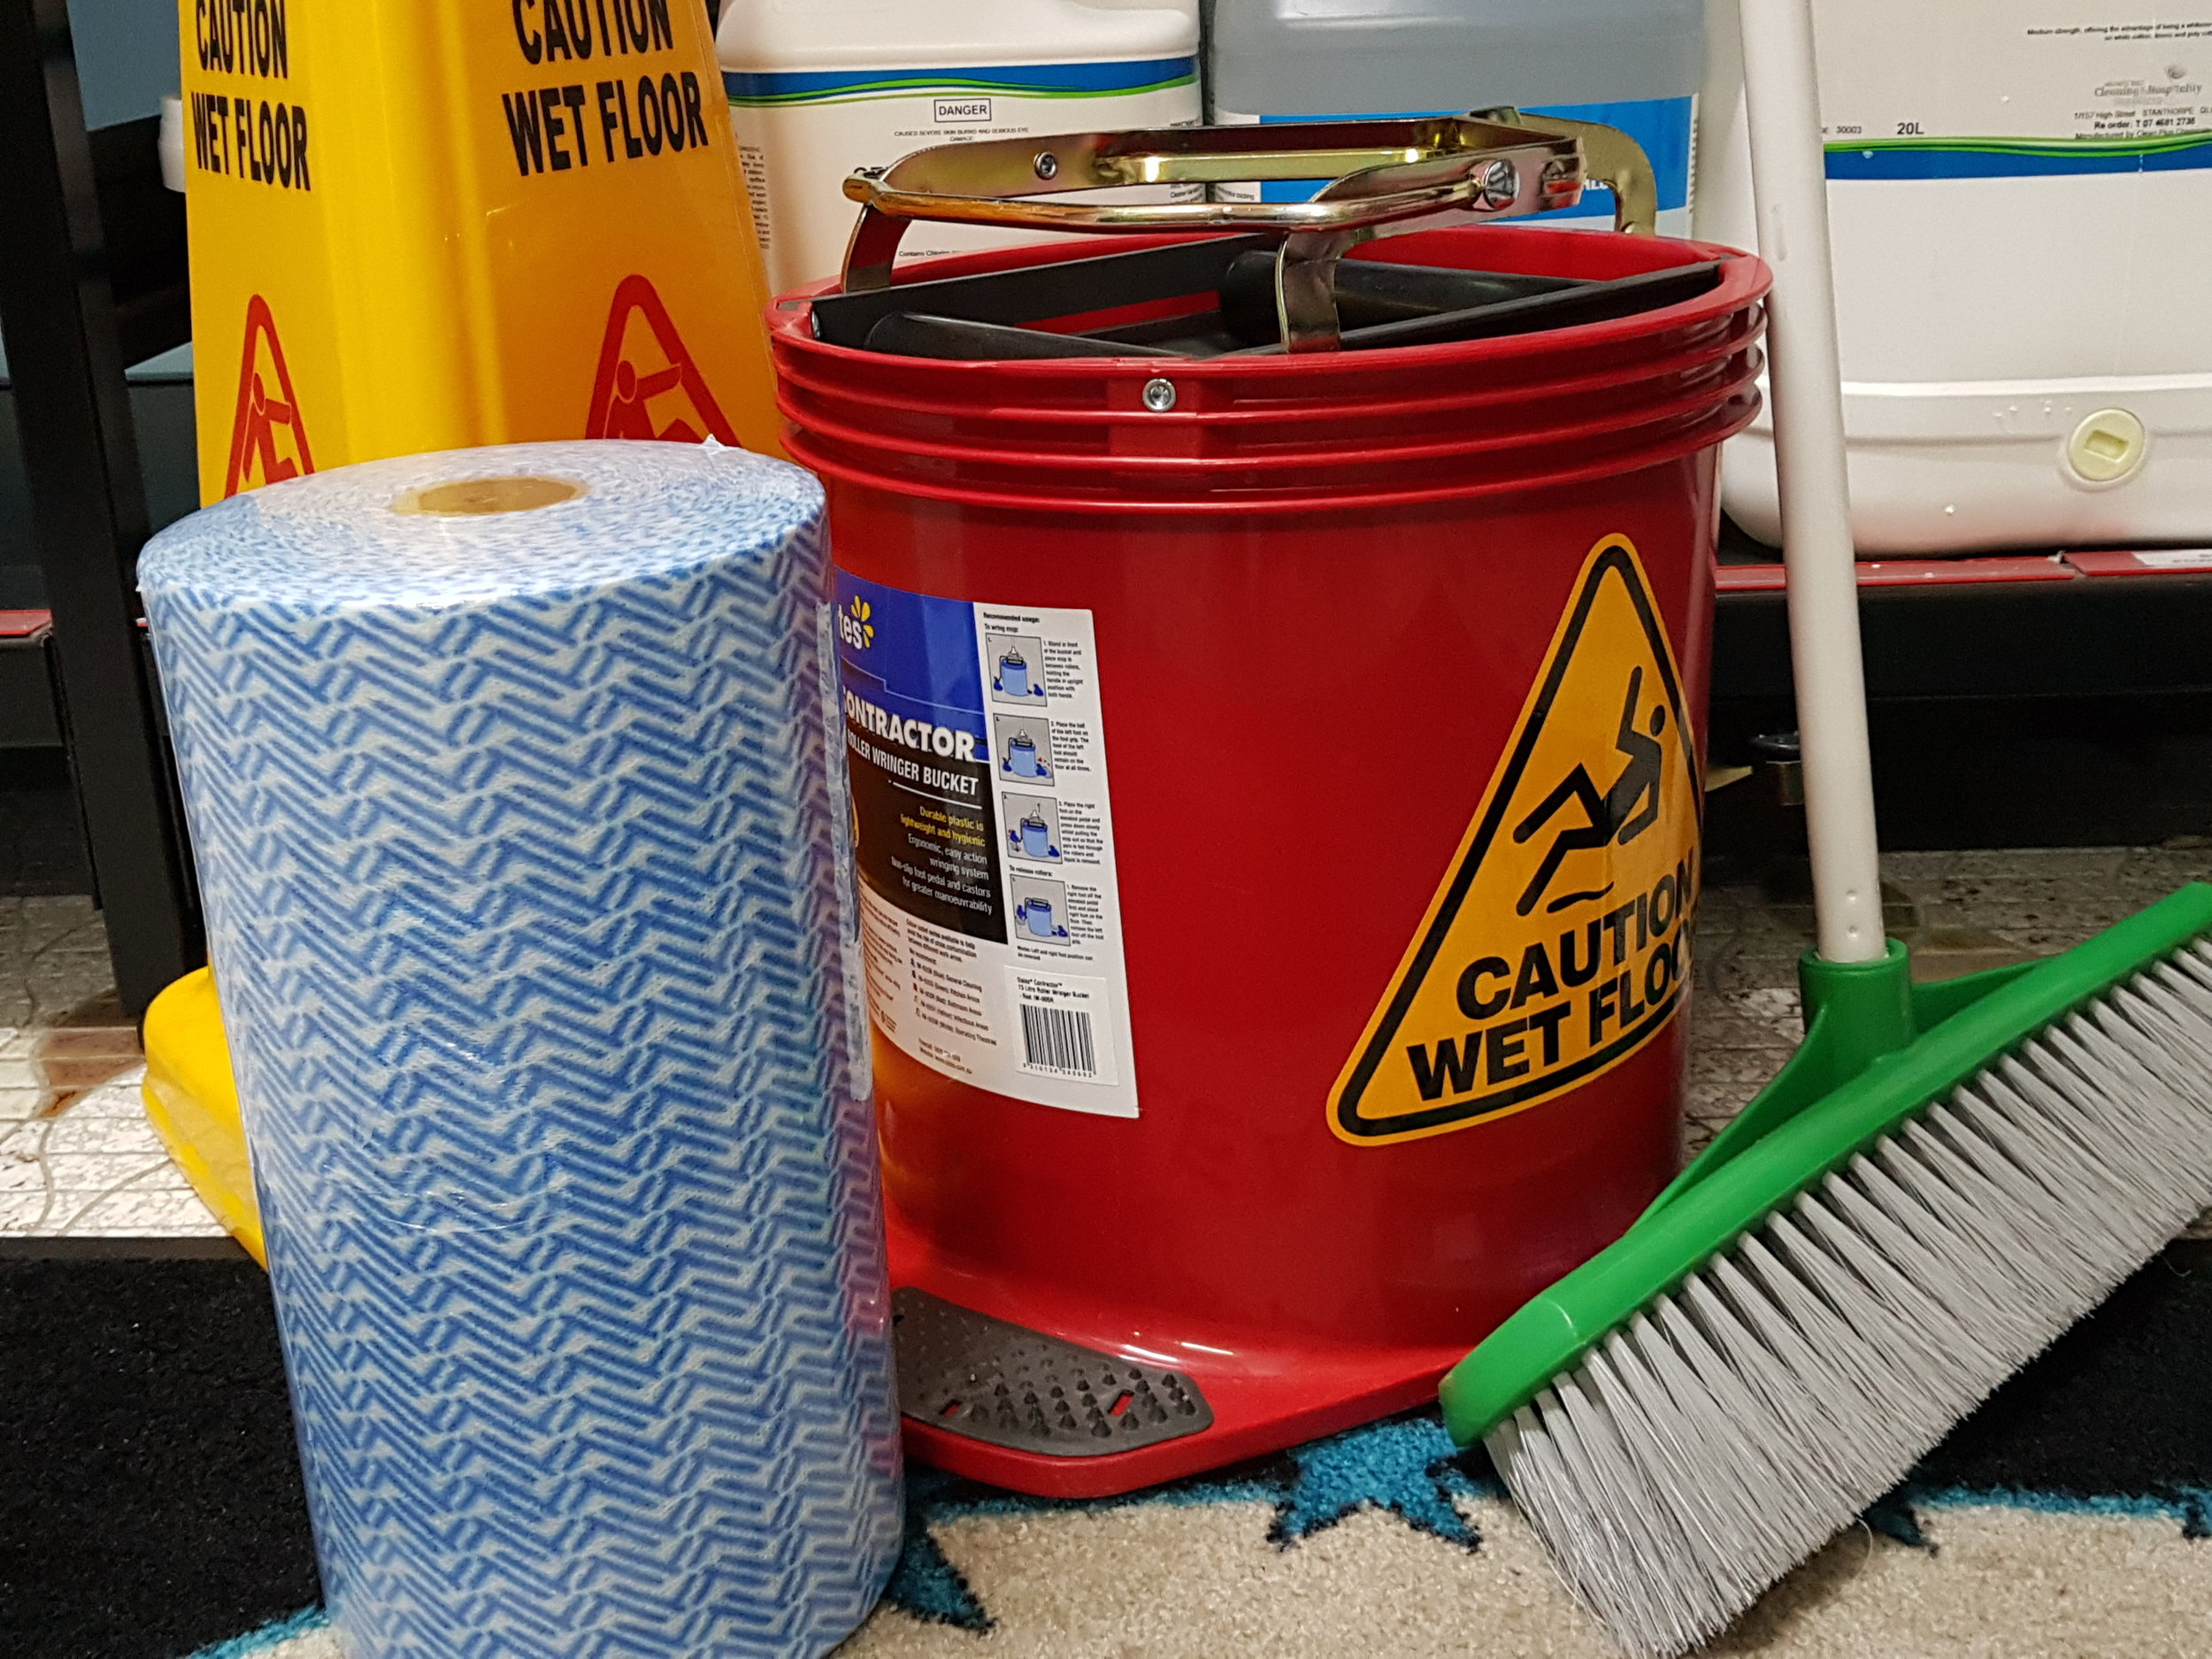 Cleaning Supplies - Got a mess to clean up?We have an extensive range of products available in store and we are happy to place orders to suit your needs.To help us help you:Please click on the supplier links below to access product catalogues. When you find what you're after note the item codes. Please email us with your selected codes and the quantity you're interested in purchasing. We will contact you promptly with prices and availability.If you'd prefer, simply call our friendly staff on 07 4681 2738Visit our supplier's sites:OatesSabcoEdco